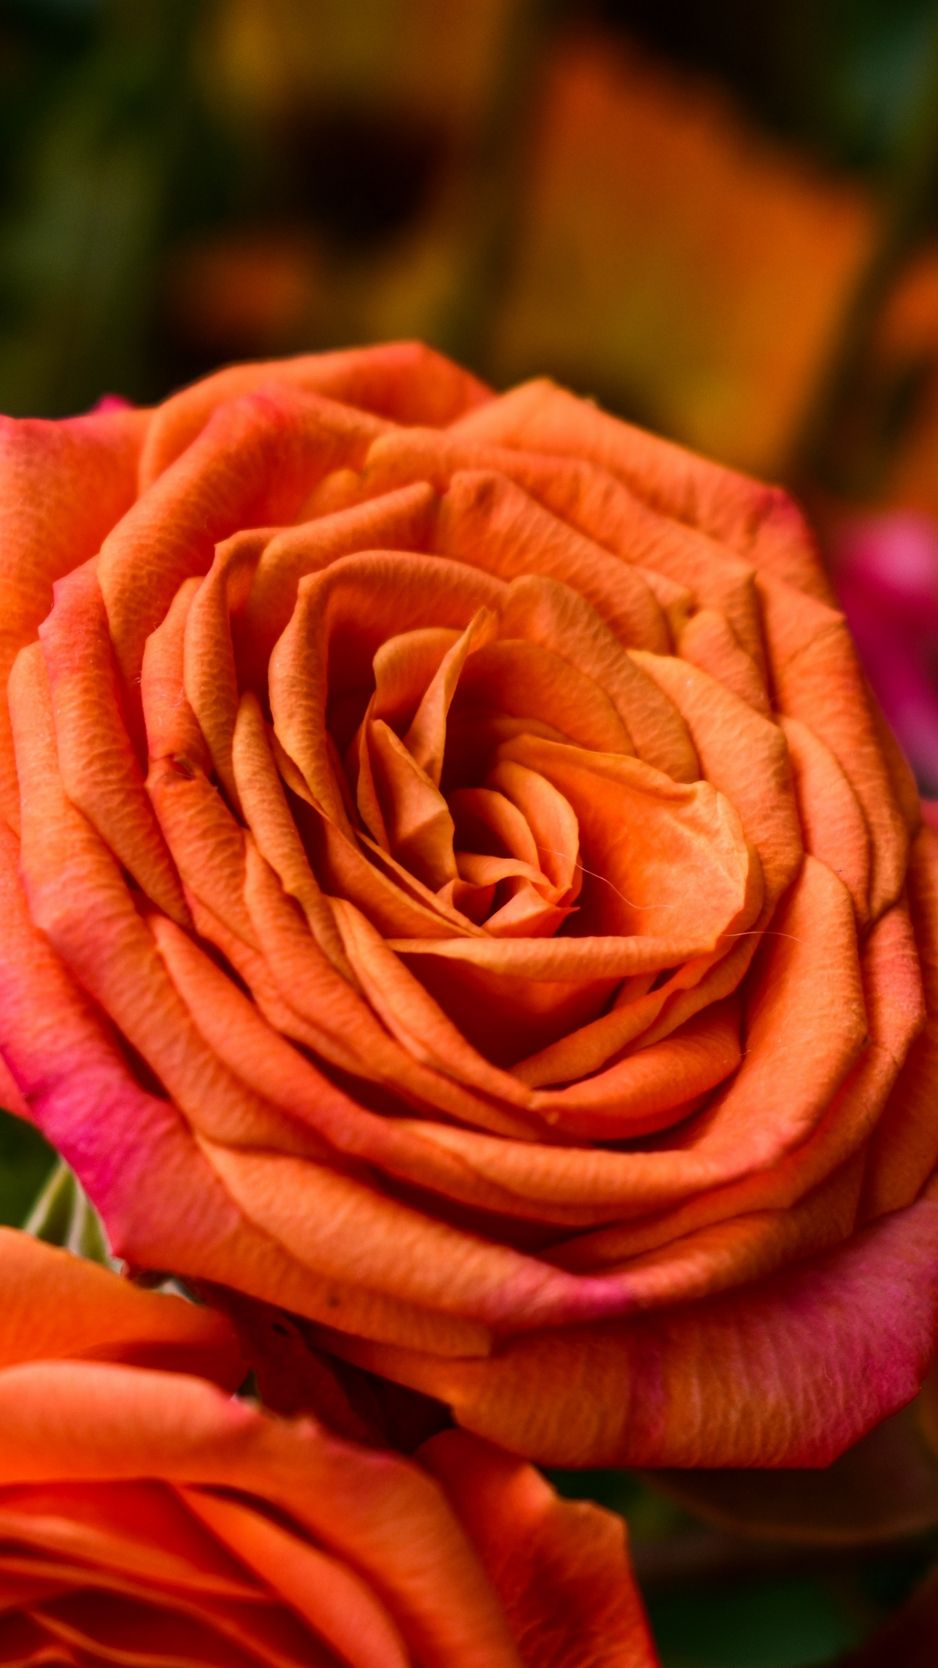 938x1668 Download wallpaper 938x1668 rose, orange, bud, petals iphone 8/7/6s ...